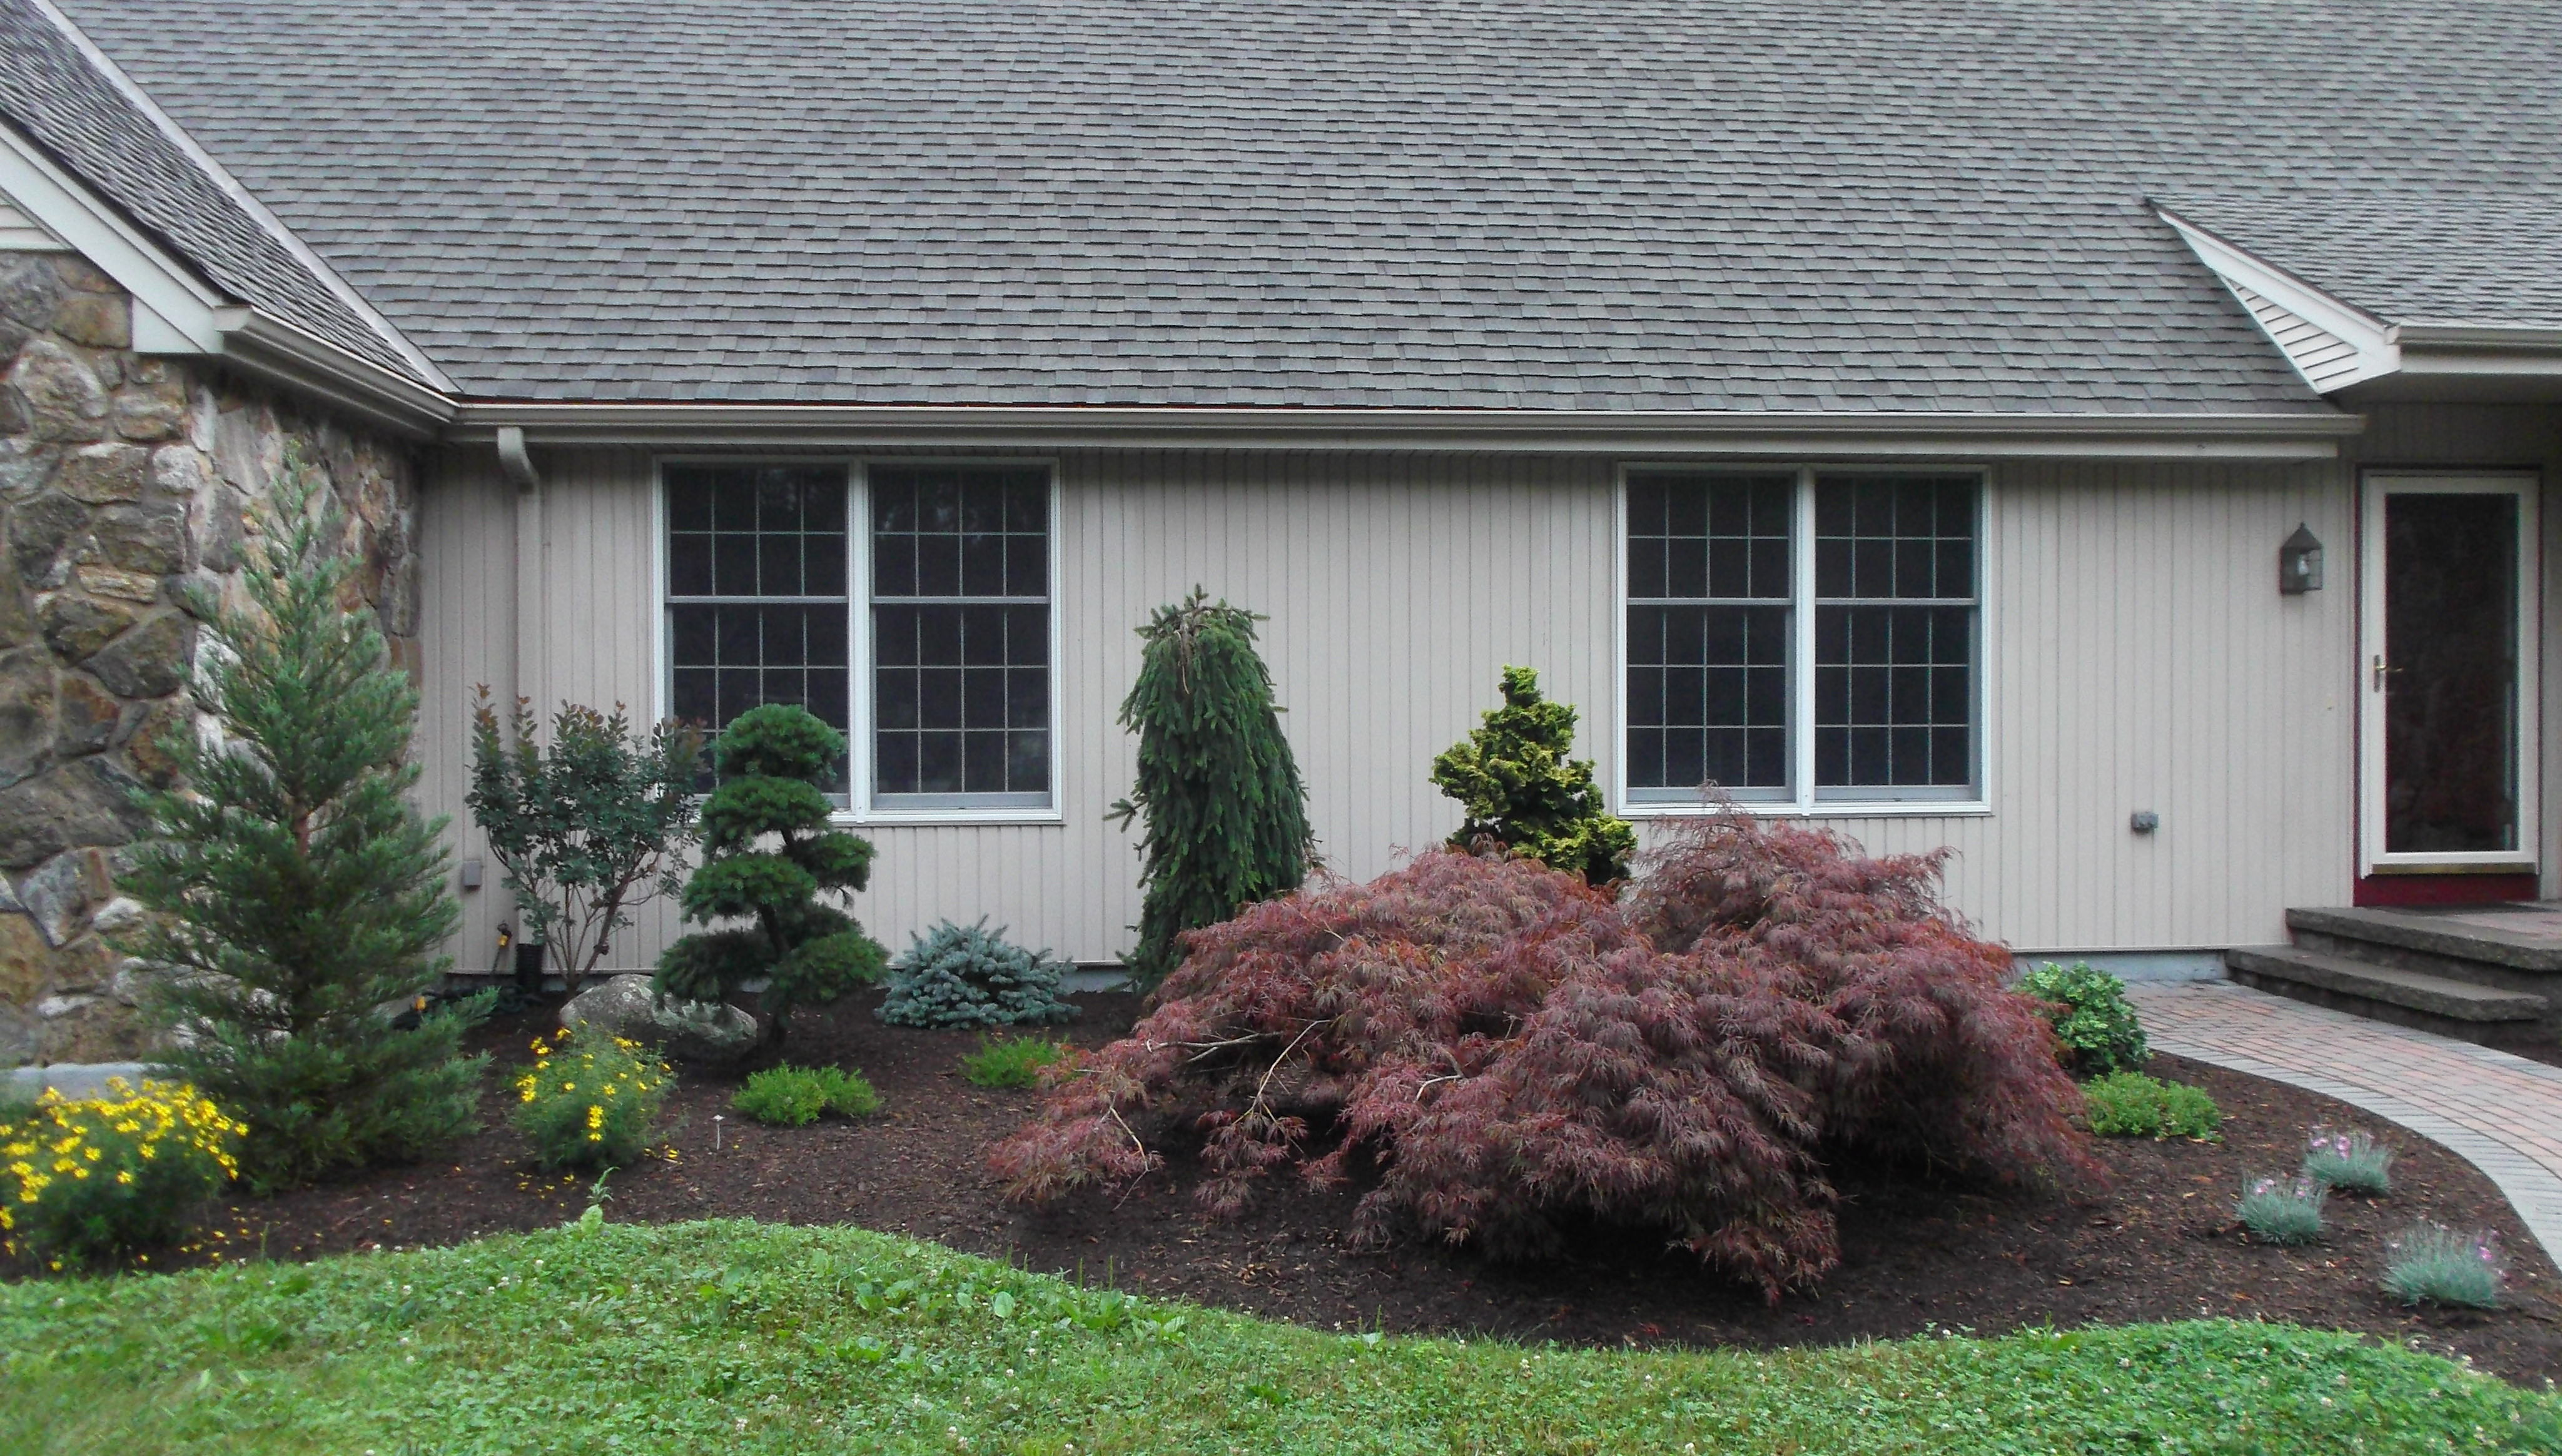 Are You Ready To Take Your Yard Or Gardens To The Next Level? Are You  Unsure What To Do With Your Available Space? We Are Here To Help! Our Staff  Can Design ...